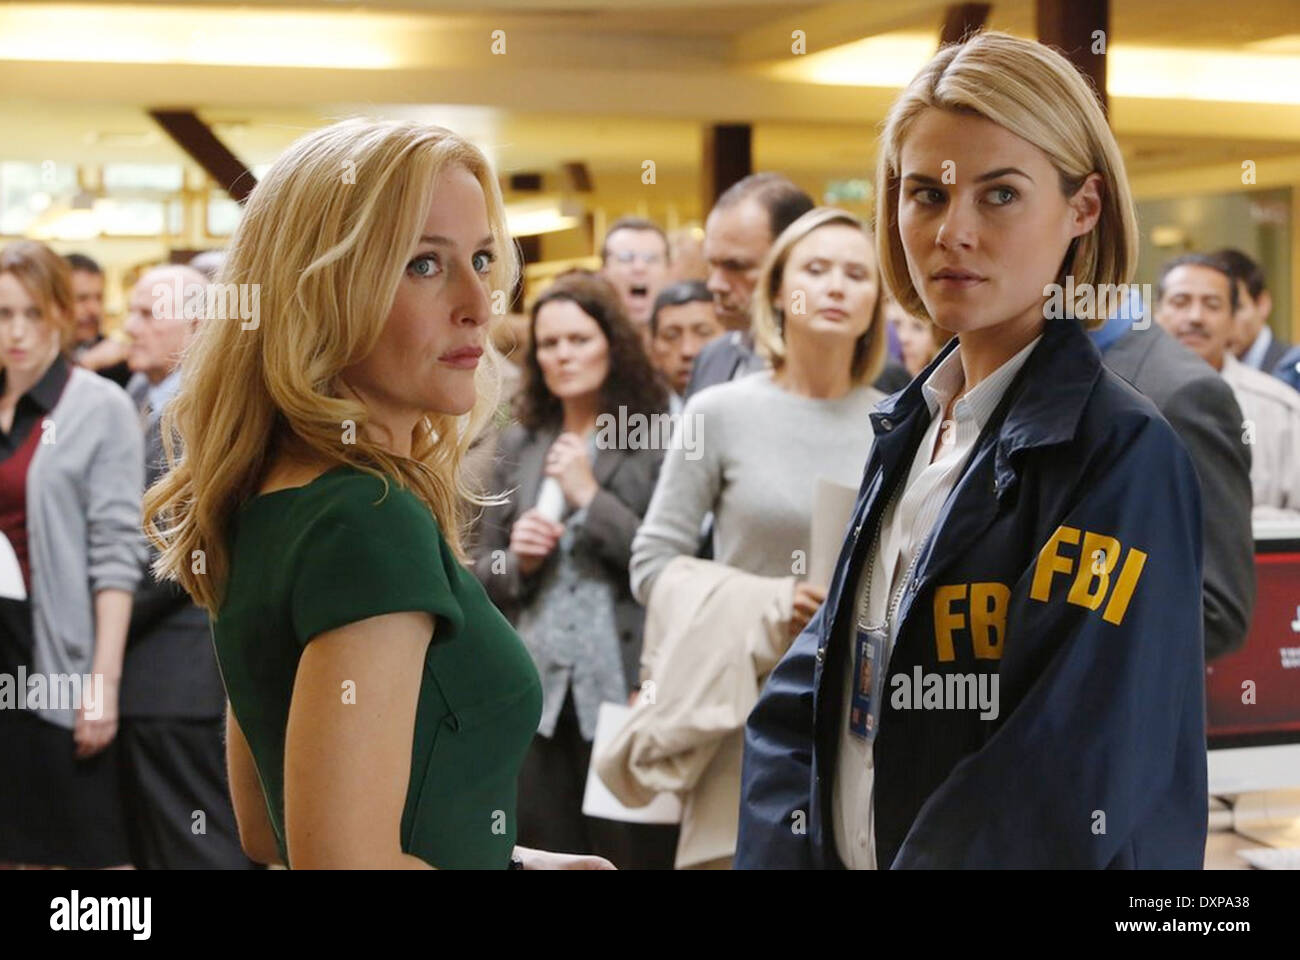 CRISIS 2013 NBCUniversal Media film with Gillian Anderson at left and Rachael Taylor - Stock Image